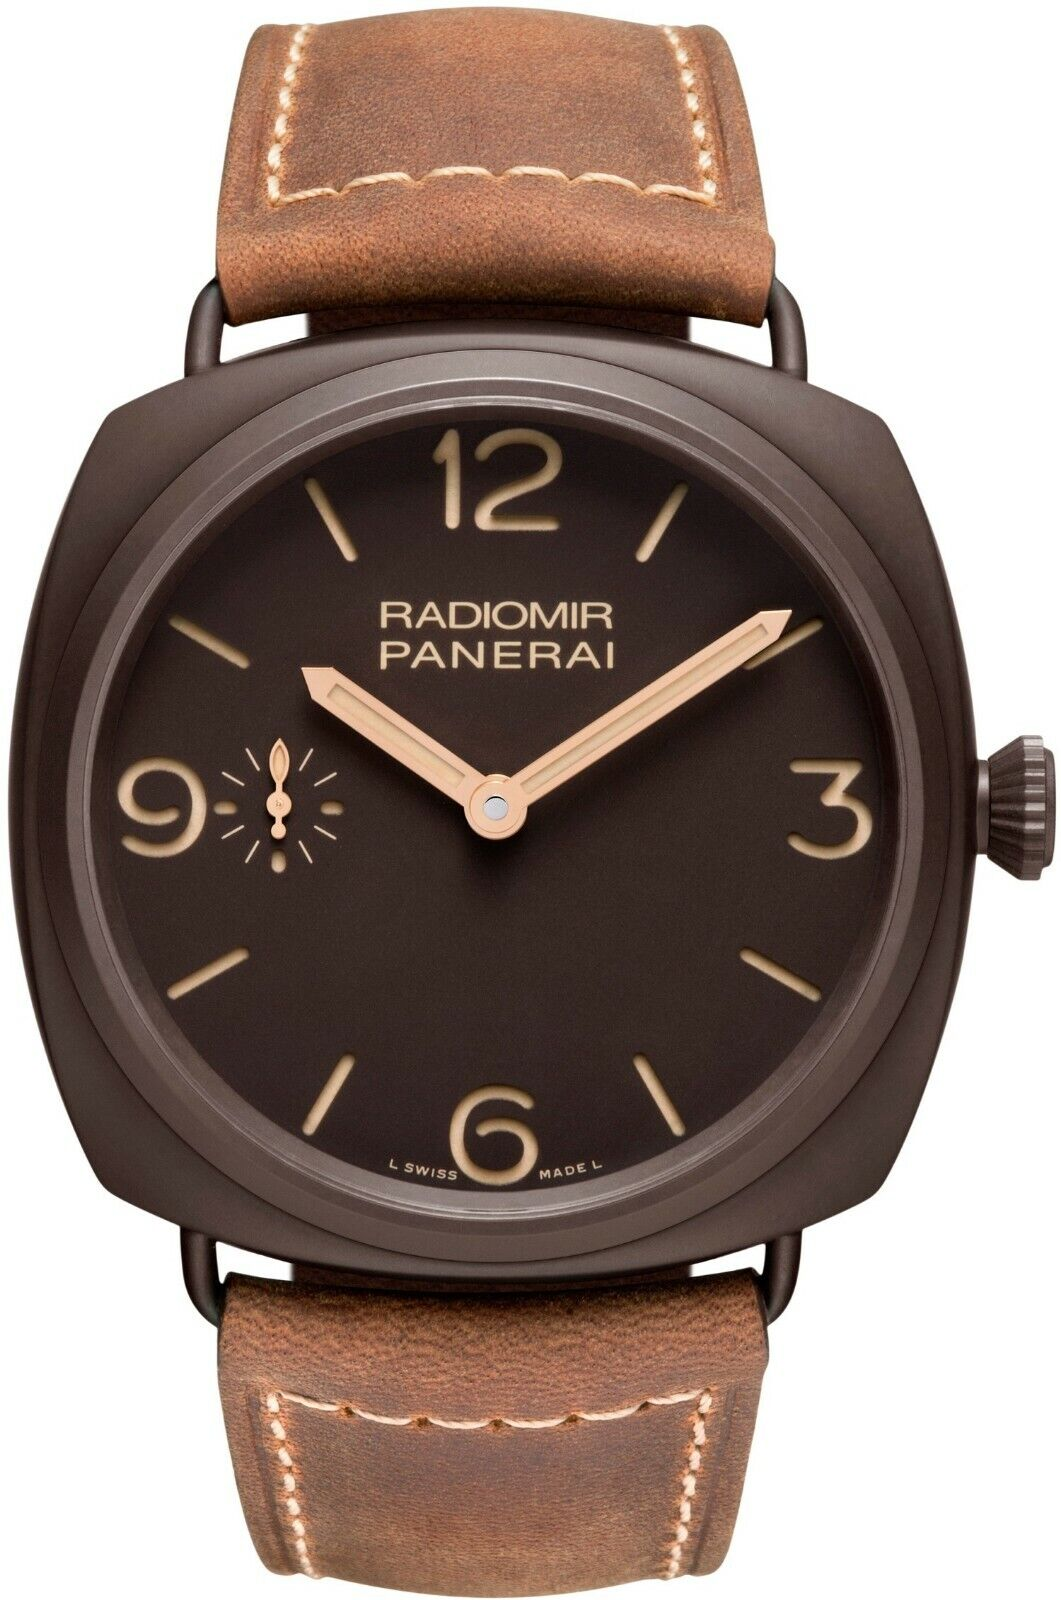 PANERAI RADIOMIR COMPOSITE 3-DAYS PAM00504 OP5914 LARGE LIMITED EDITION WATCH